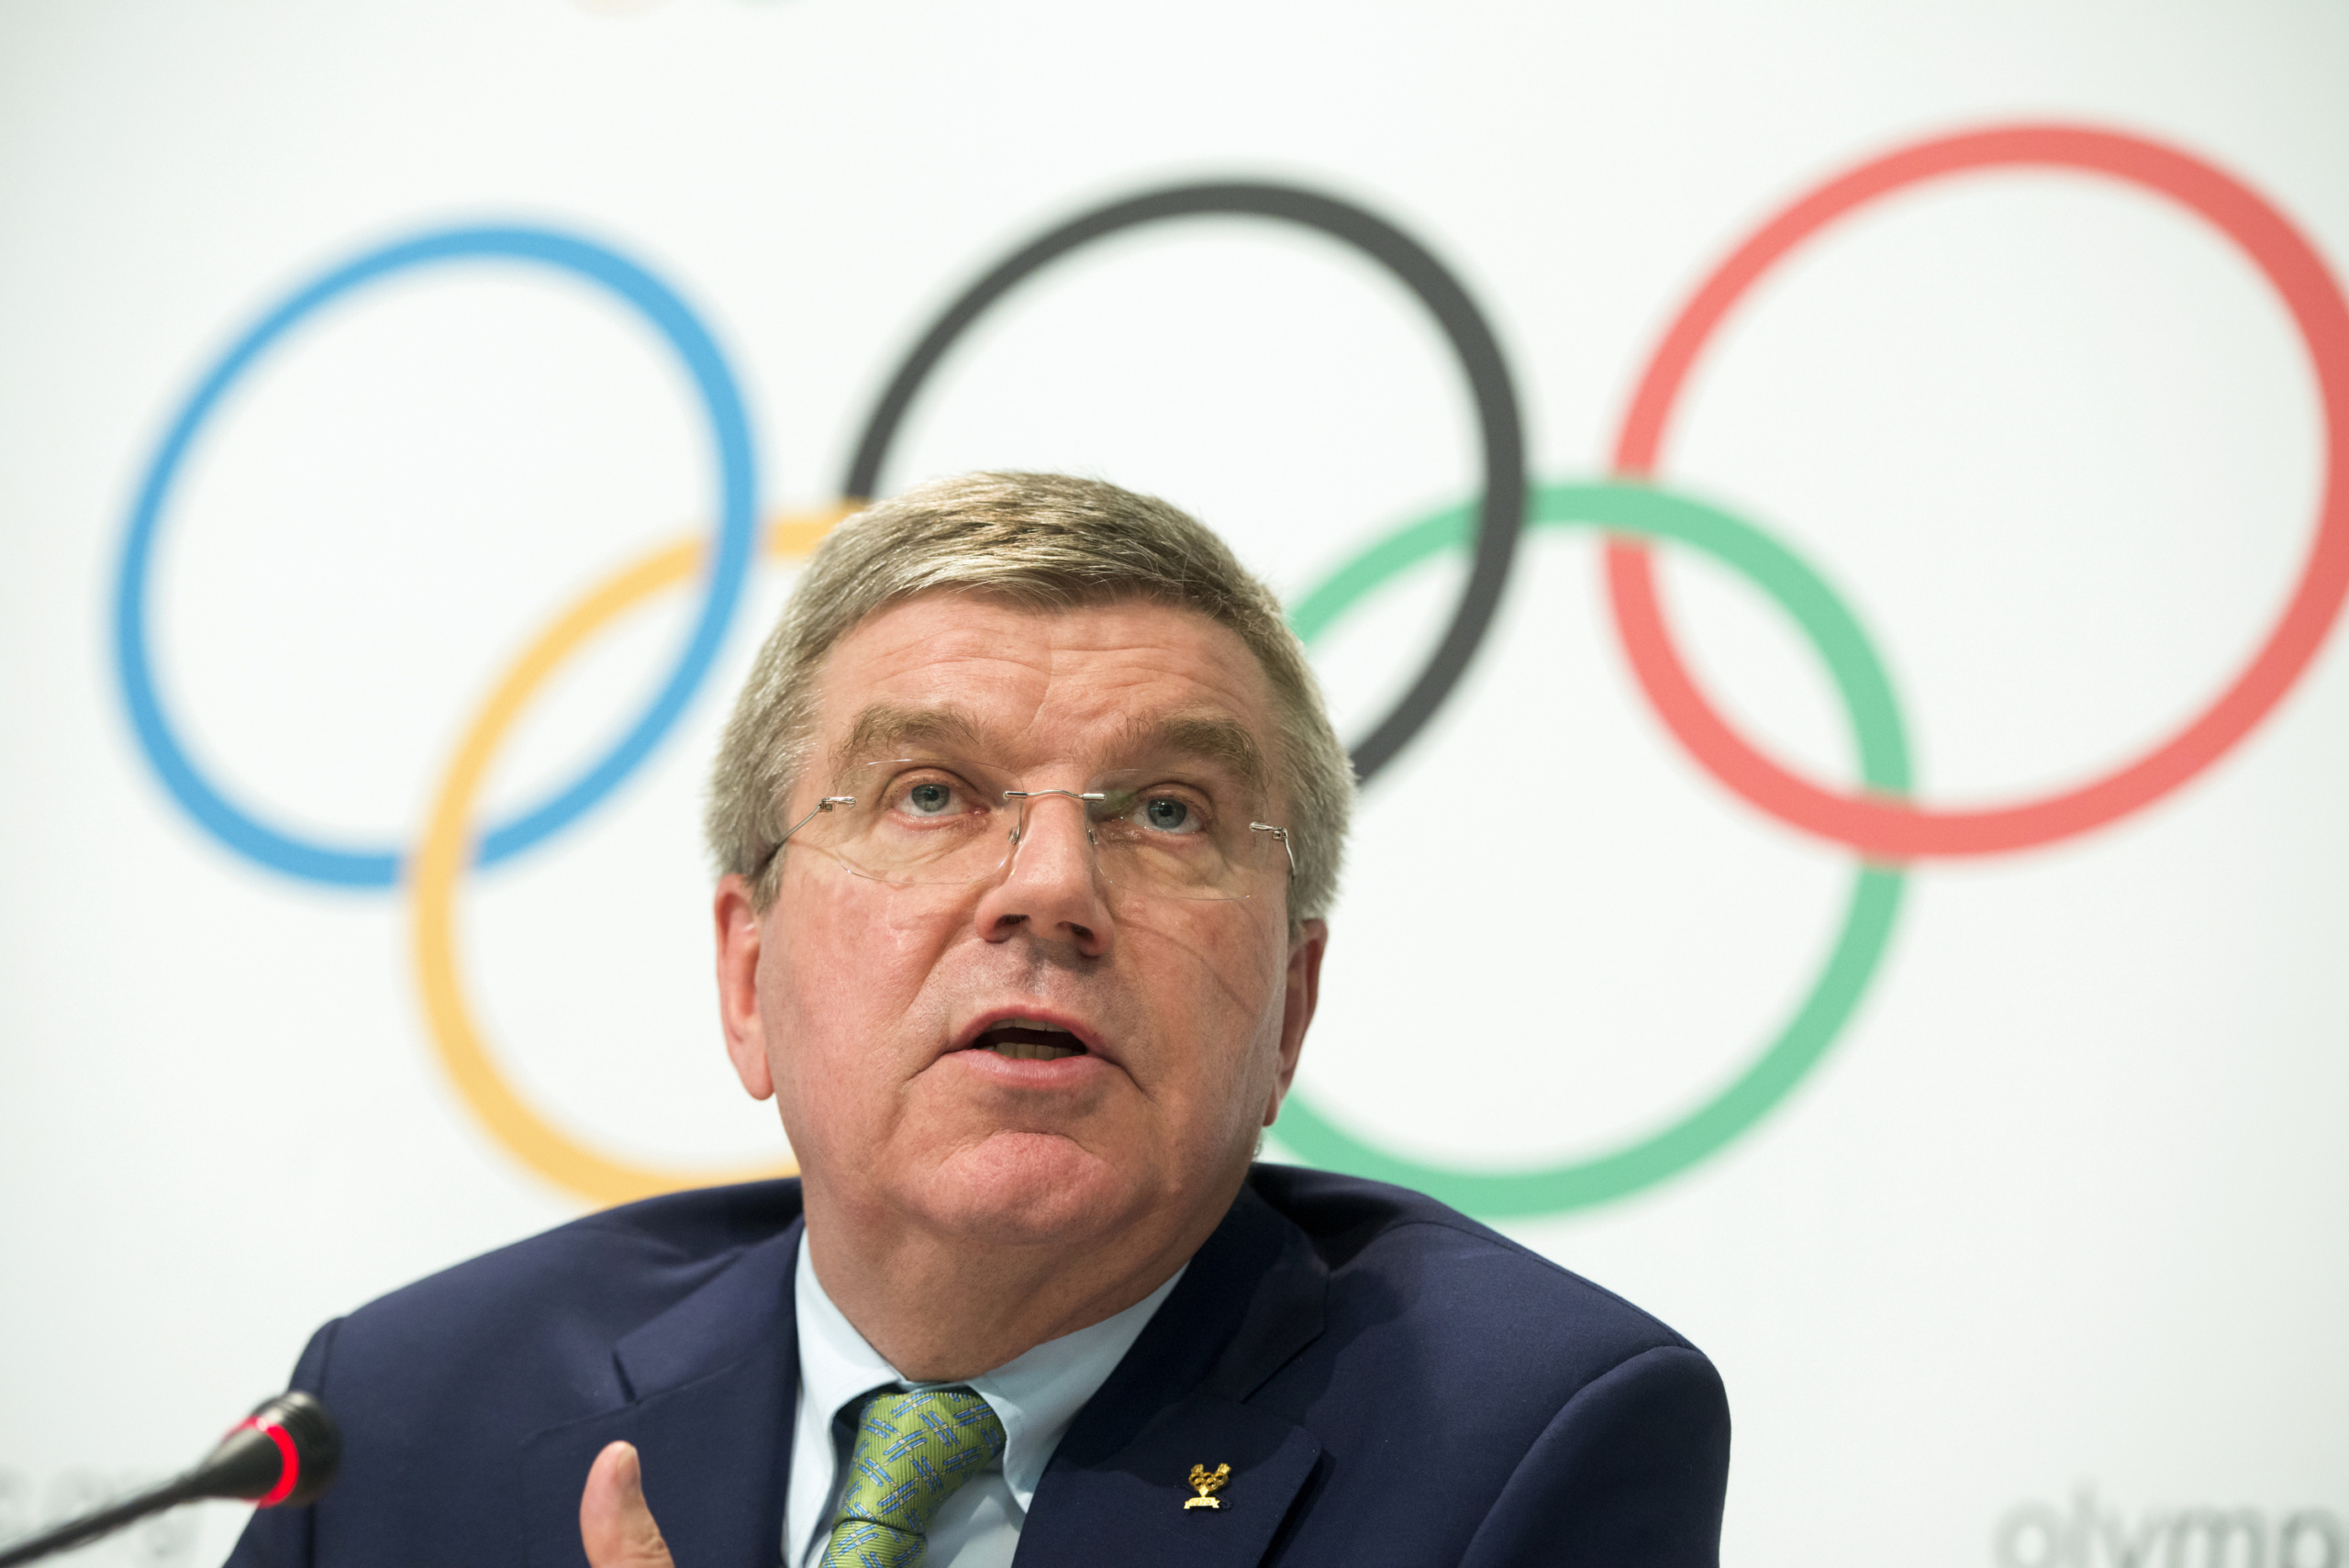 Lausanne, Switzerland The President of the International Olympic Committee (IOC) Thomas Bach speaks to the media at the end of an IOC Executive Board meeting in Lausanne, on June 8 2015. Bach said on June 8 that scandal-plagued FIFA needs 'painful' but necessary reform. AFP PHOTO / RICHARD JUILLIART (Photo credit should read Richard Juilliart/AFP/Getty Images)